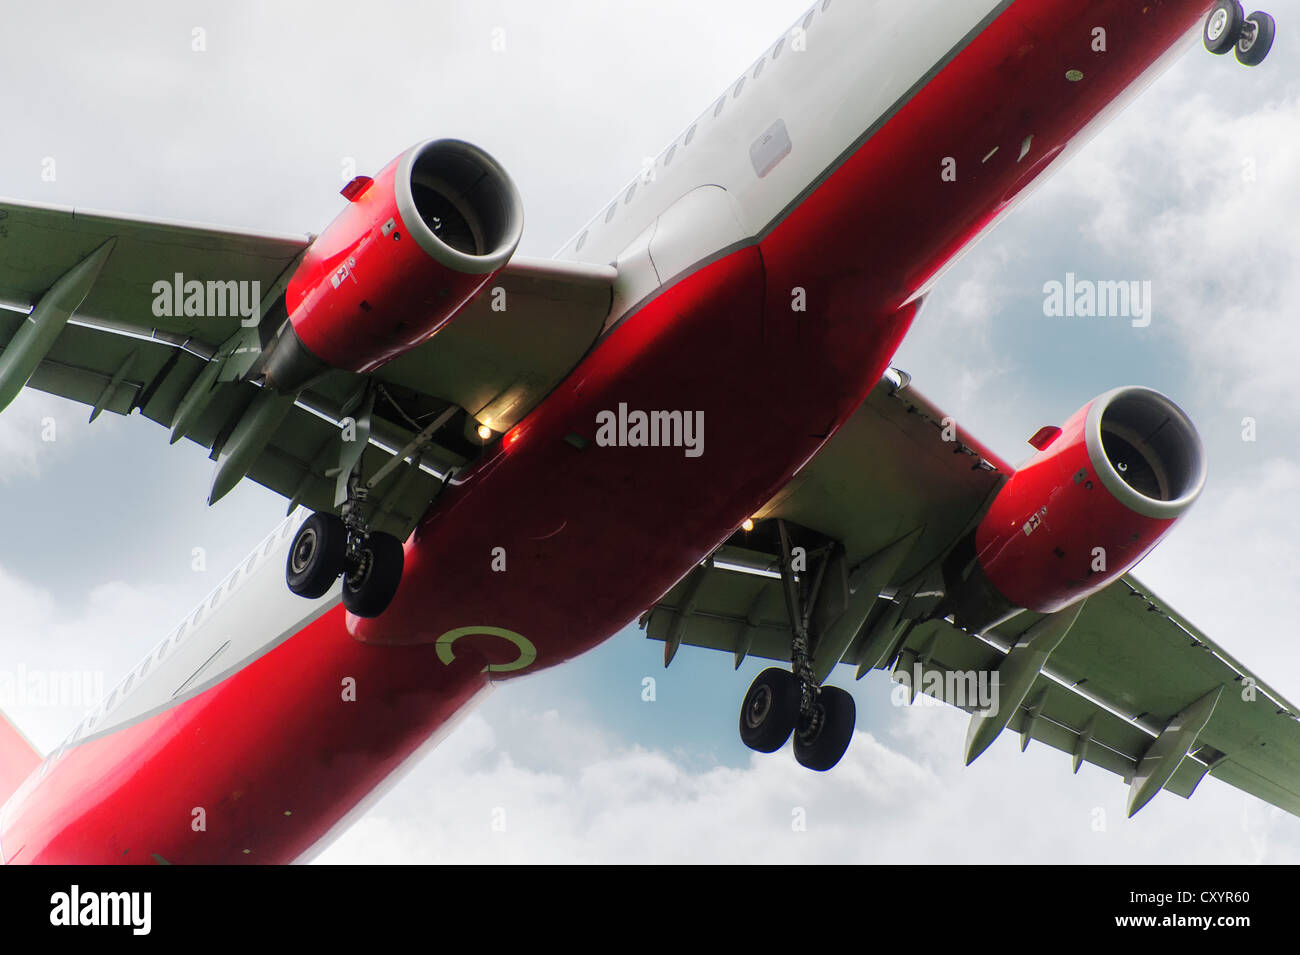 Detail view of a passenger jet, flyover, Duesseldorf, North Rhine-Westphalia - Stock Image